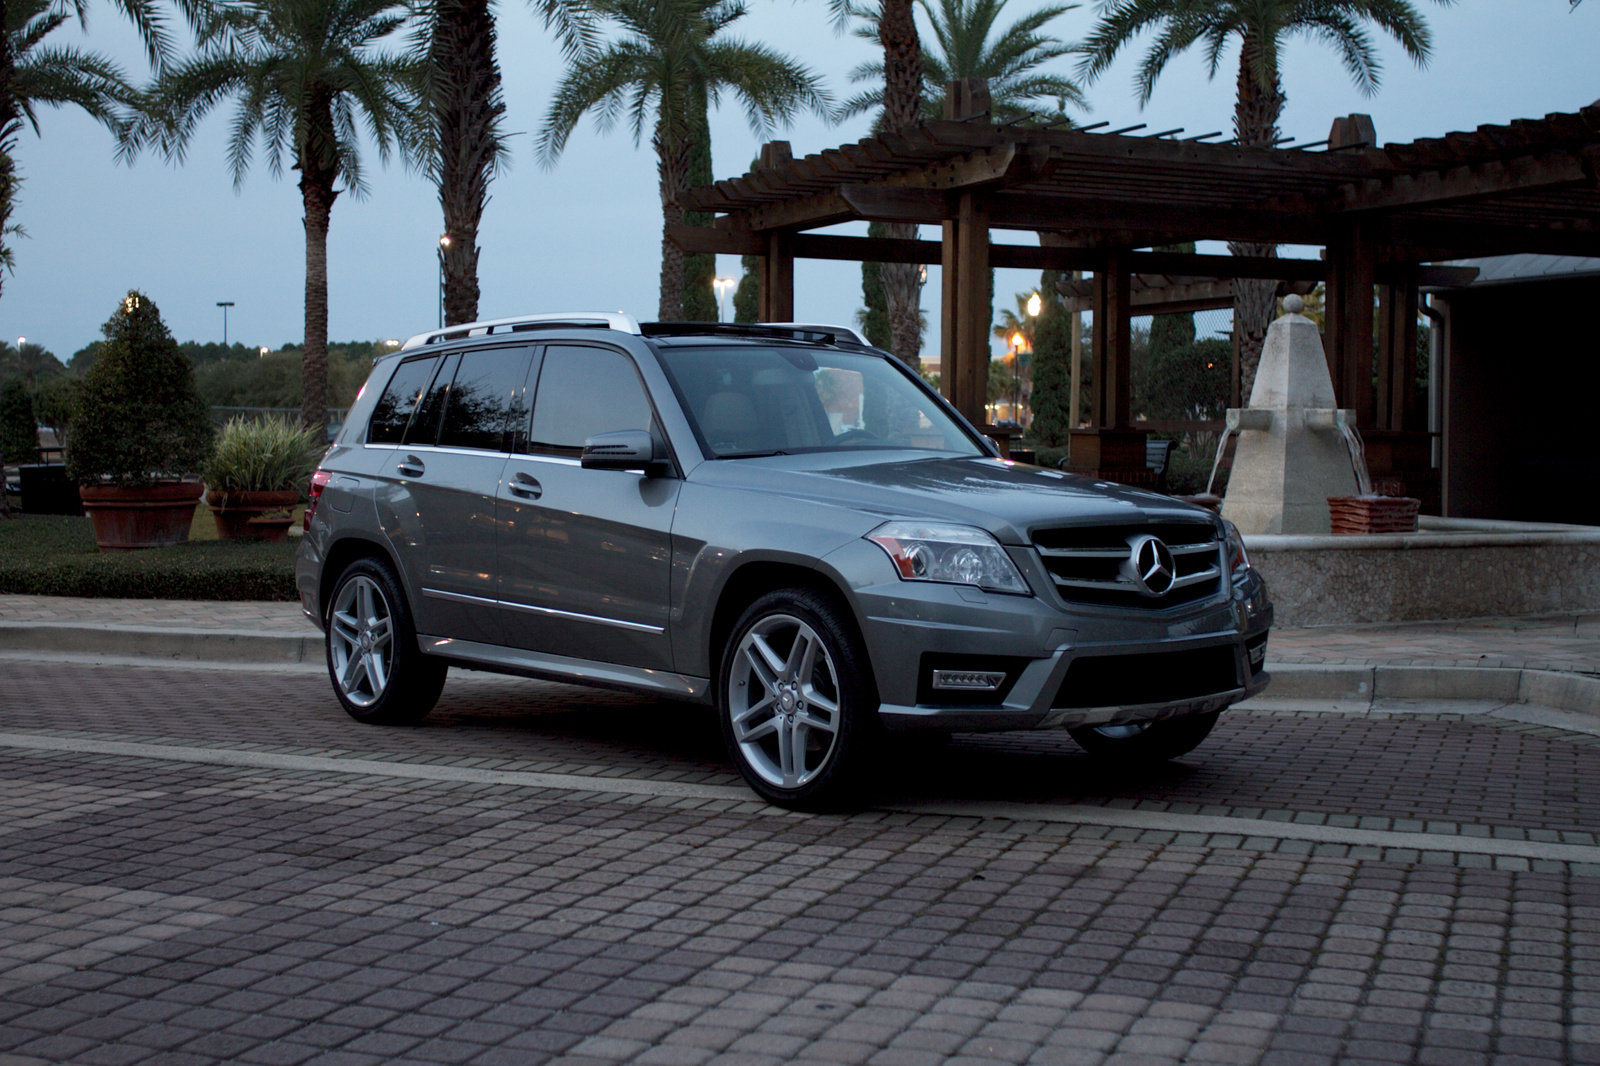 2011 mercedes benz glk class review cargurus for Mercedes benz glk350 2011